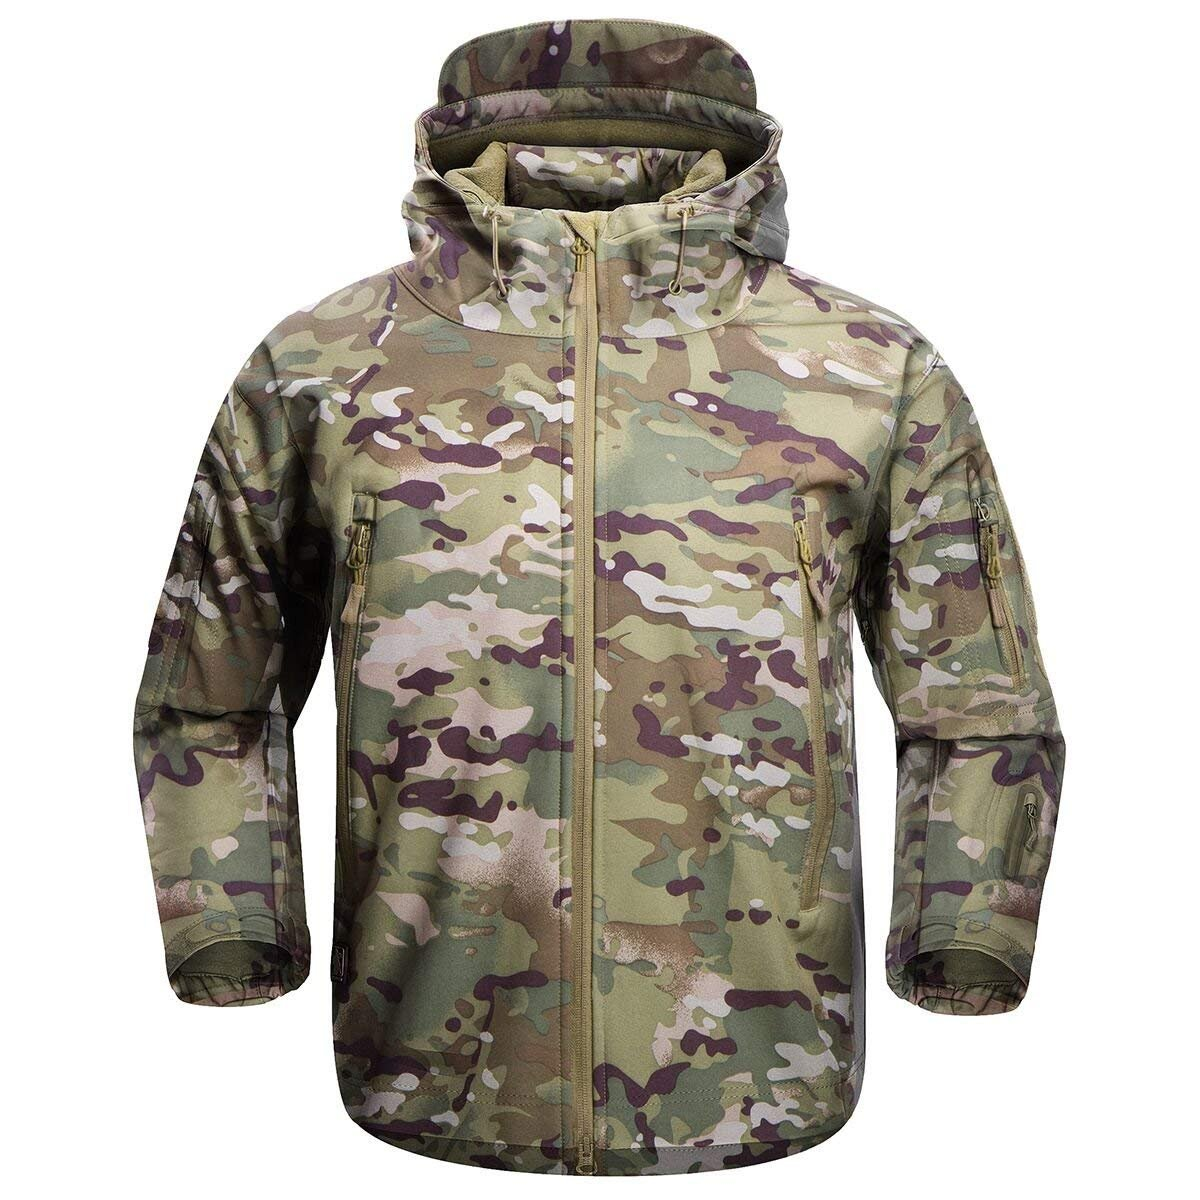 FREE SOLDIER Men's Outdoor Waterproof Soft Shell Hooded Military Tactical Jacket (MultiCam, XL) by FREE SOLDIER